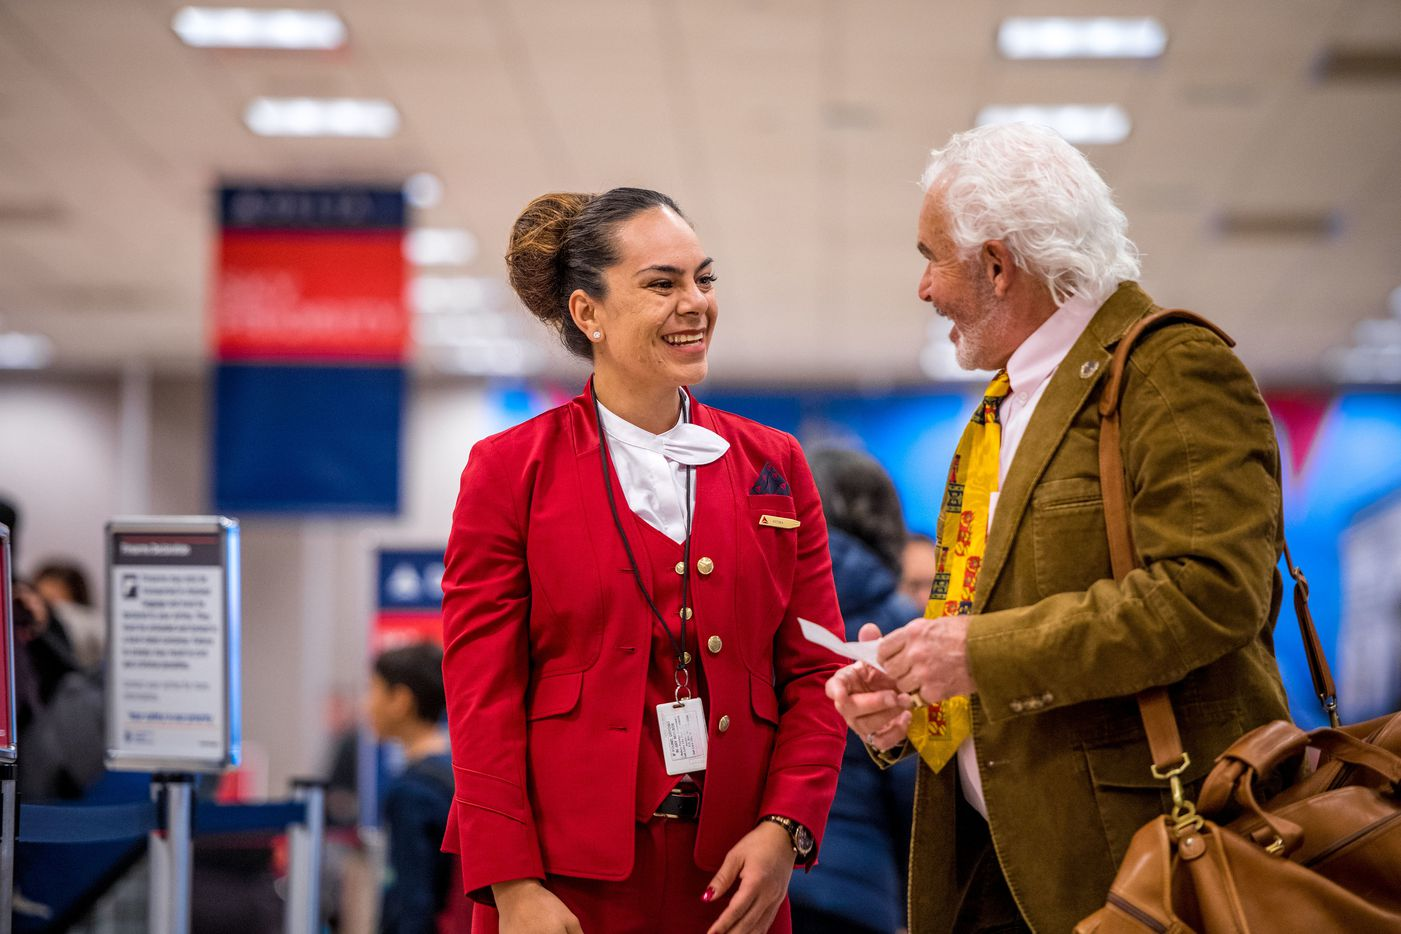 Delta Air Lines debuted new uniforms for 64,000 employees on Tuesday, the first new design in over a decade.